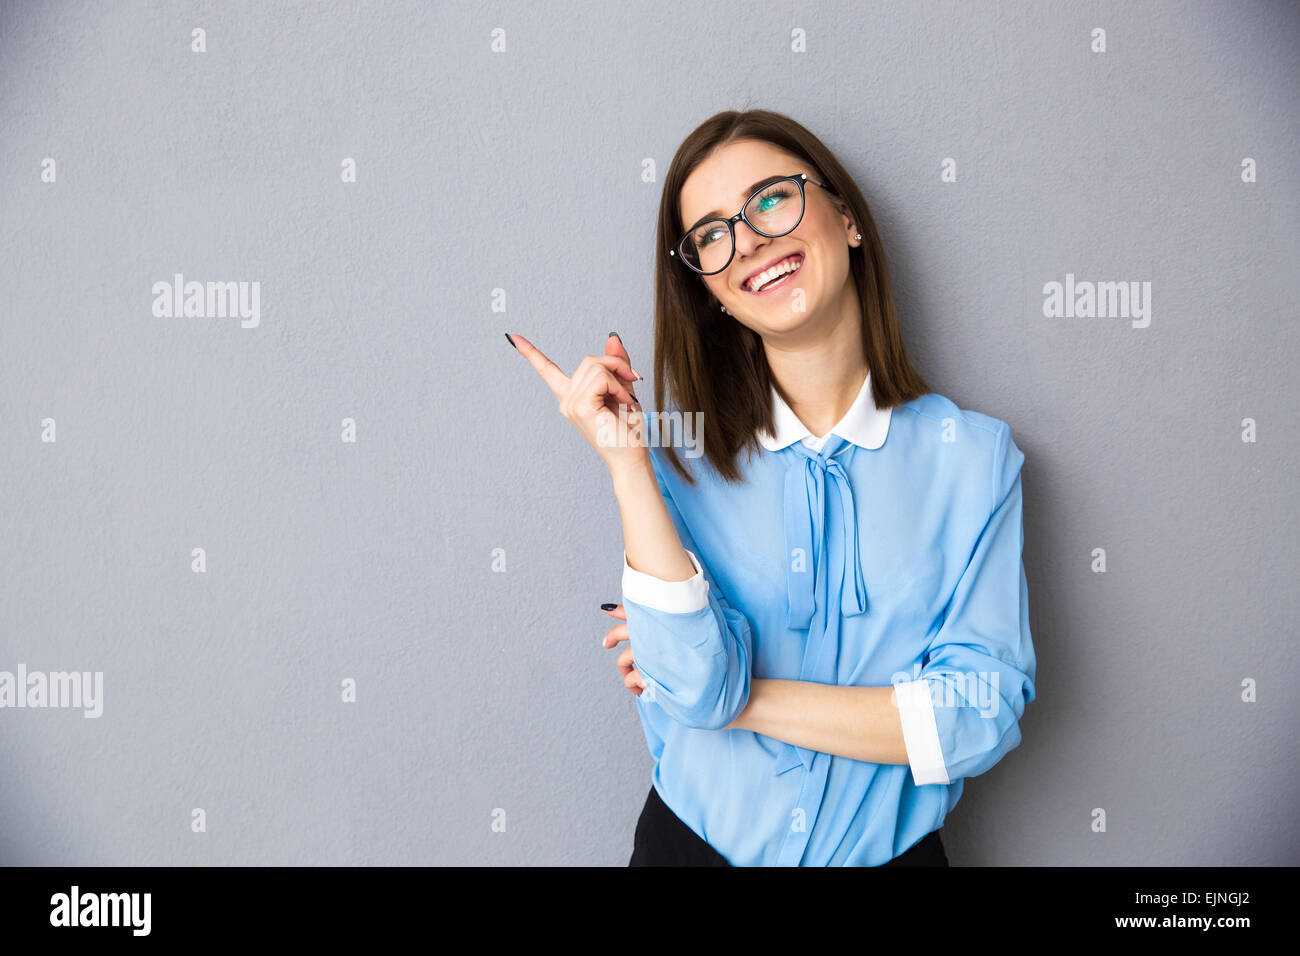 Cheerful businesswoman pointing away over gray background. Wearing in blue shirt and glasses. Looking away - Stock Image